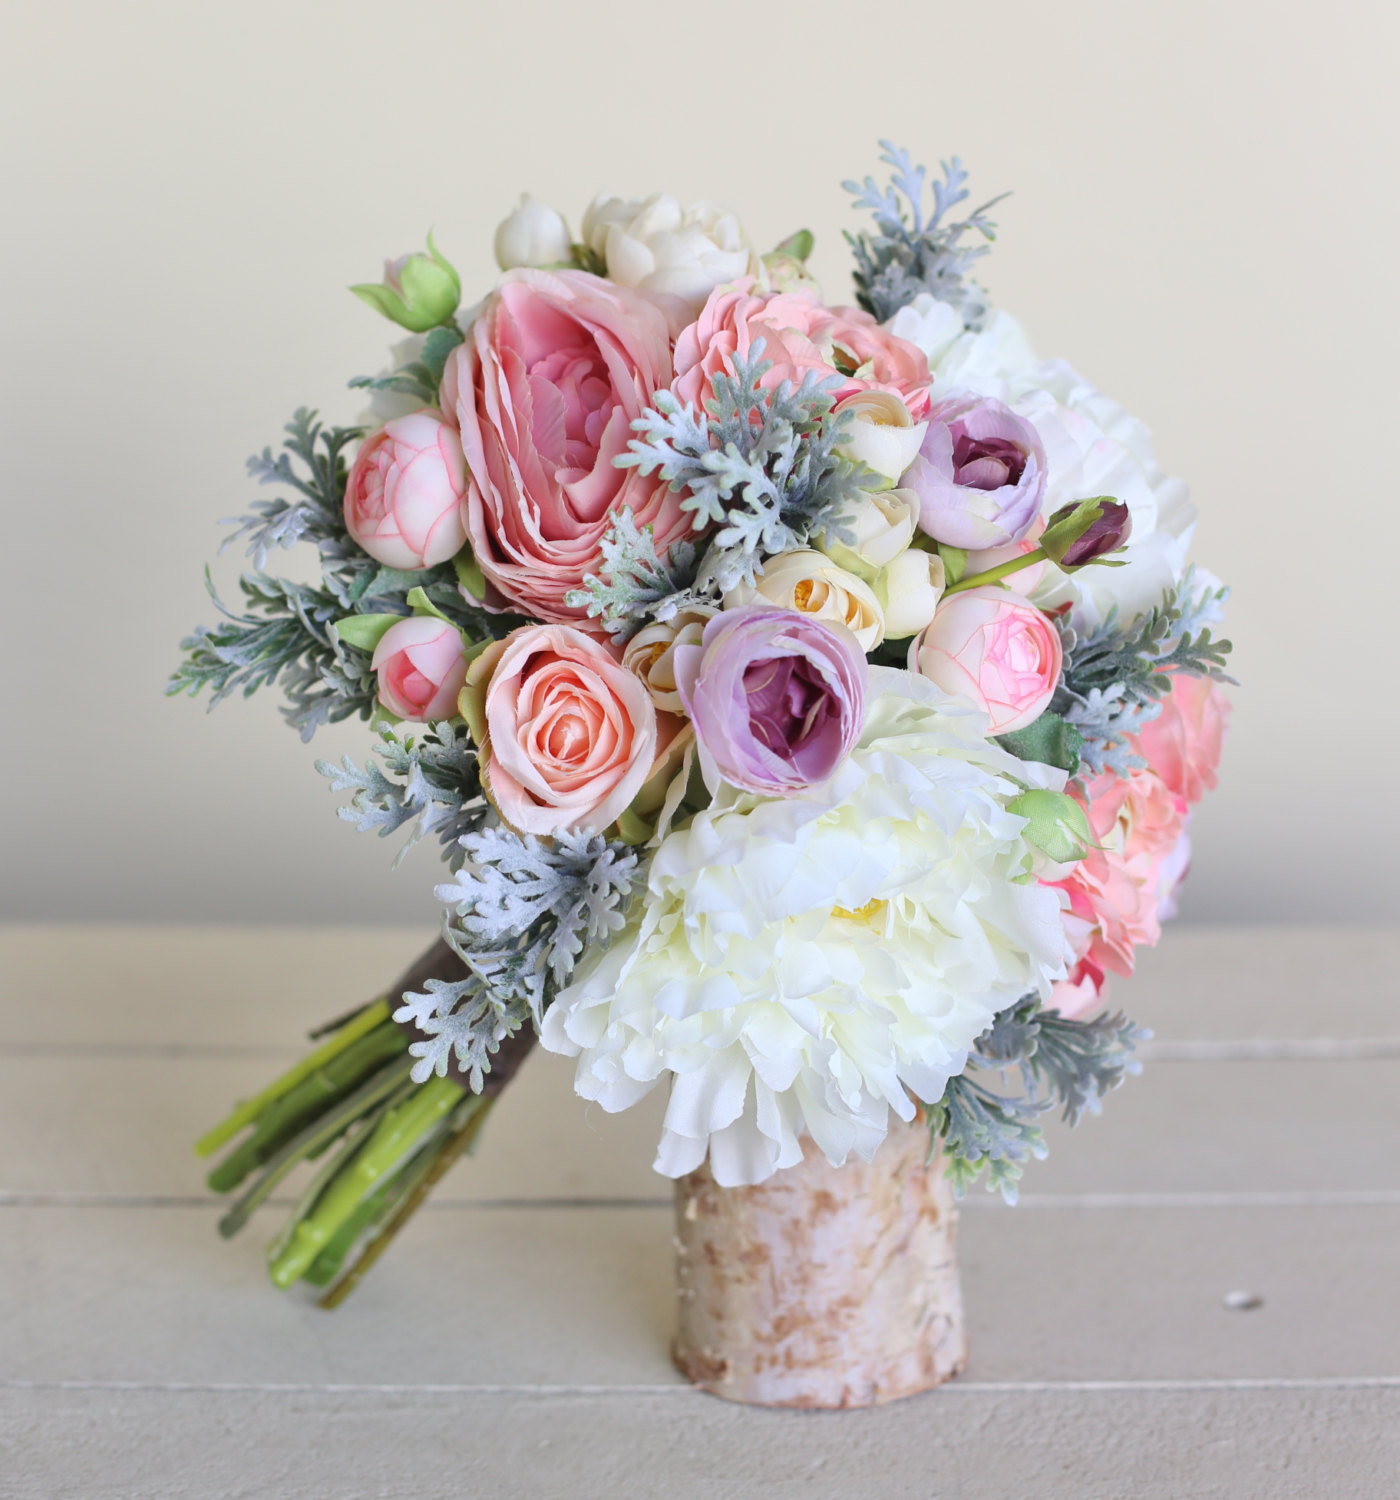 Wedding bridal bouquet inspiration modwedding for Bridal flower bouquets ideas